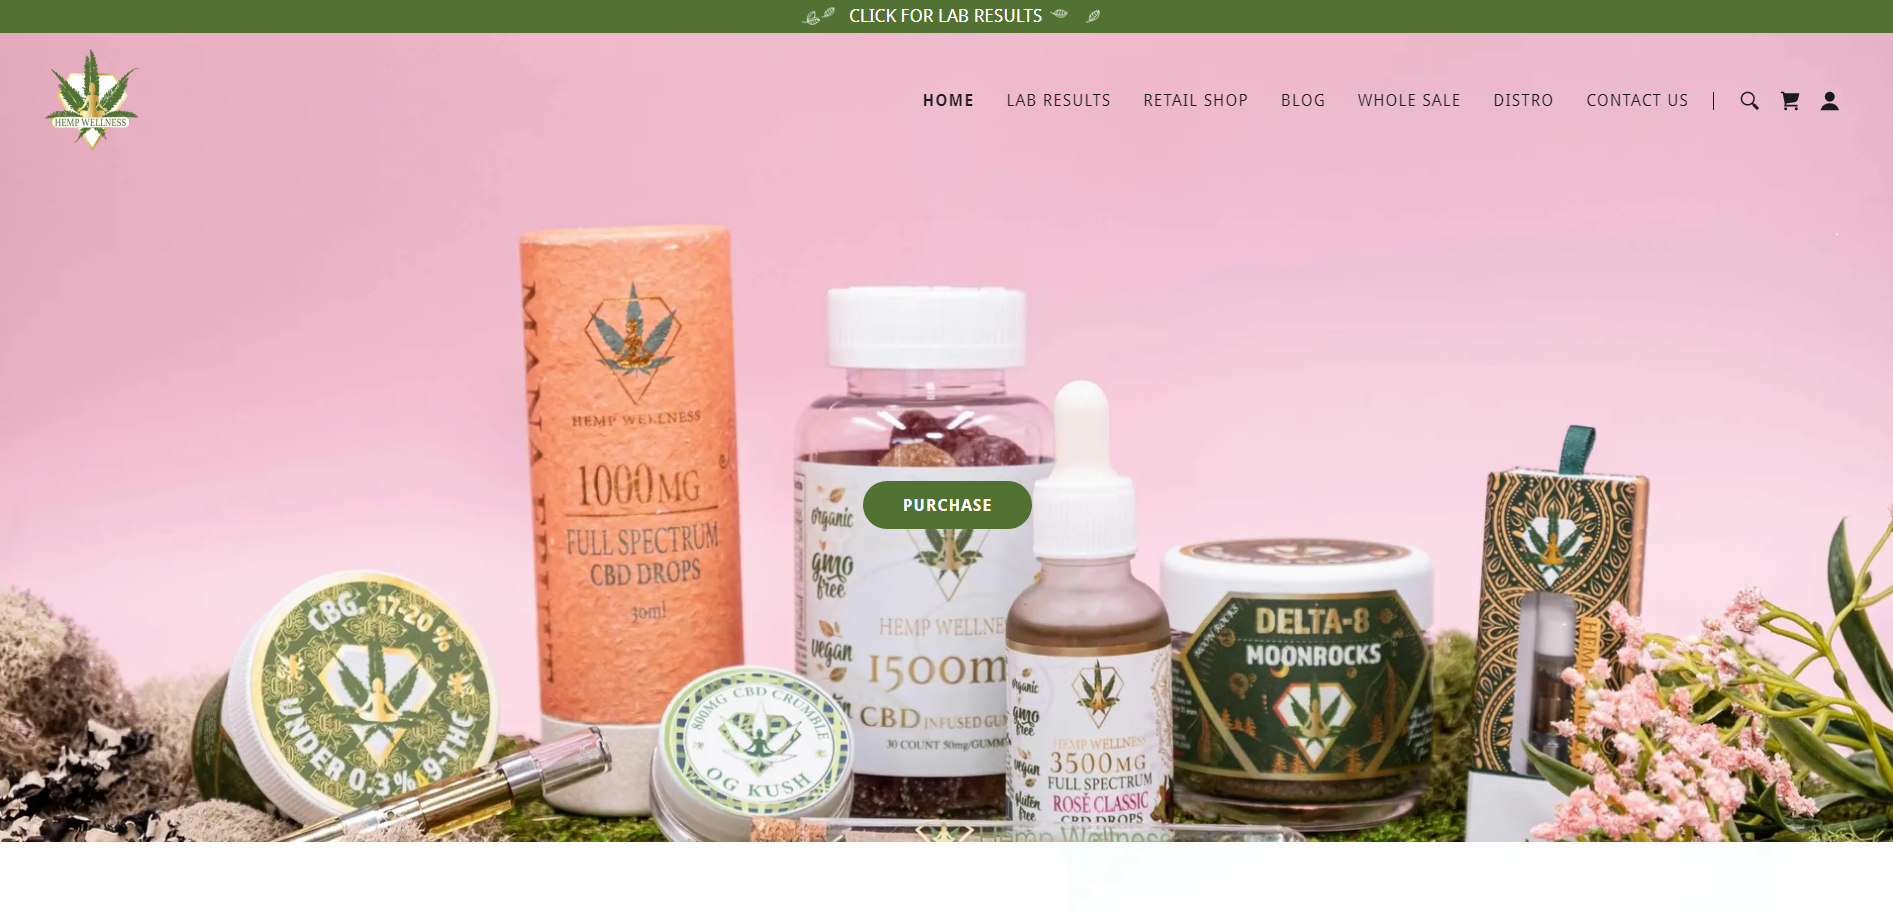 hempwellness CBD Products